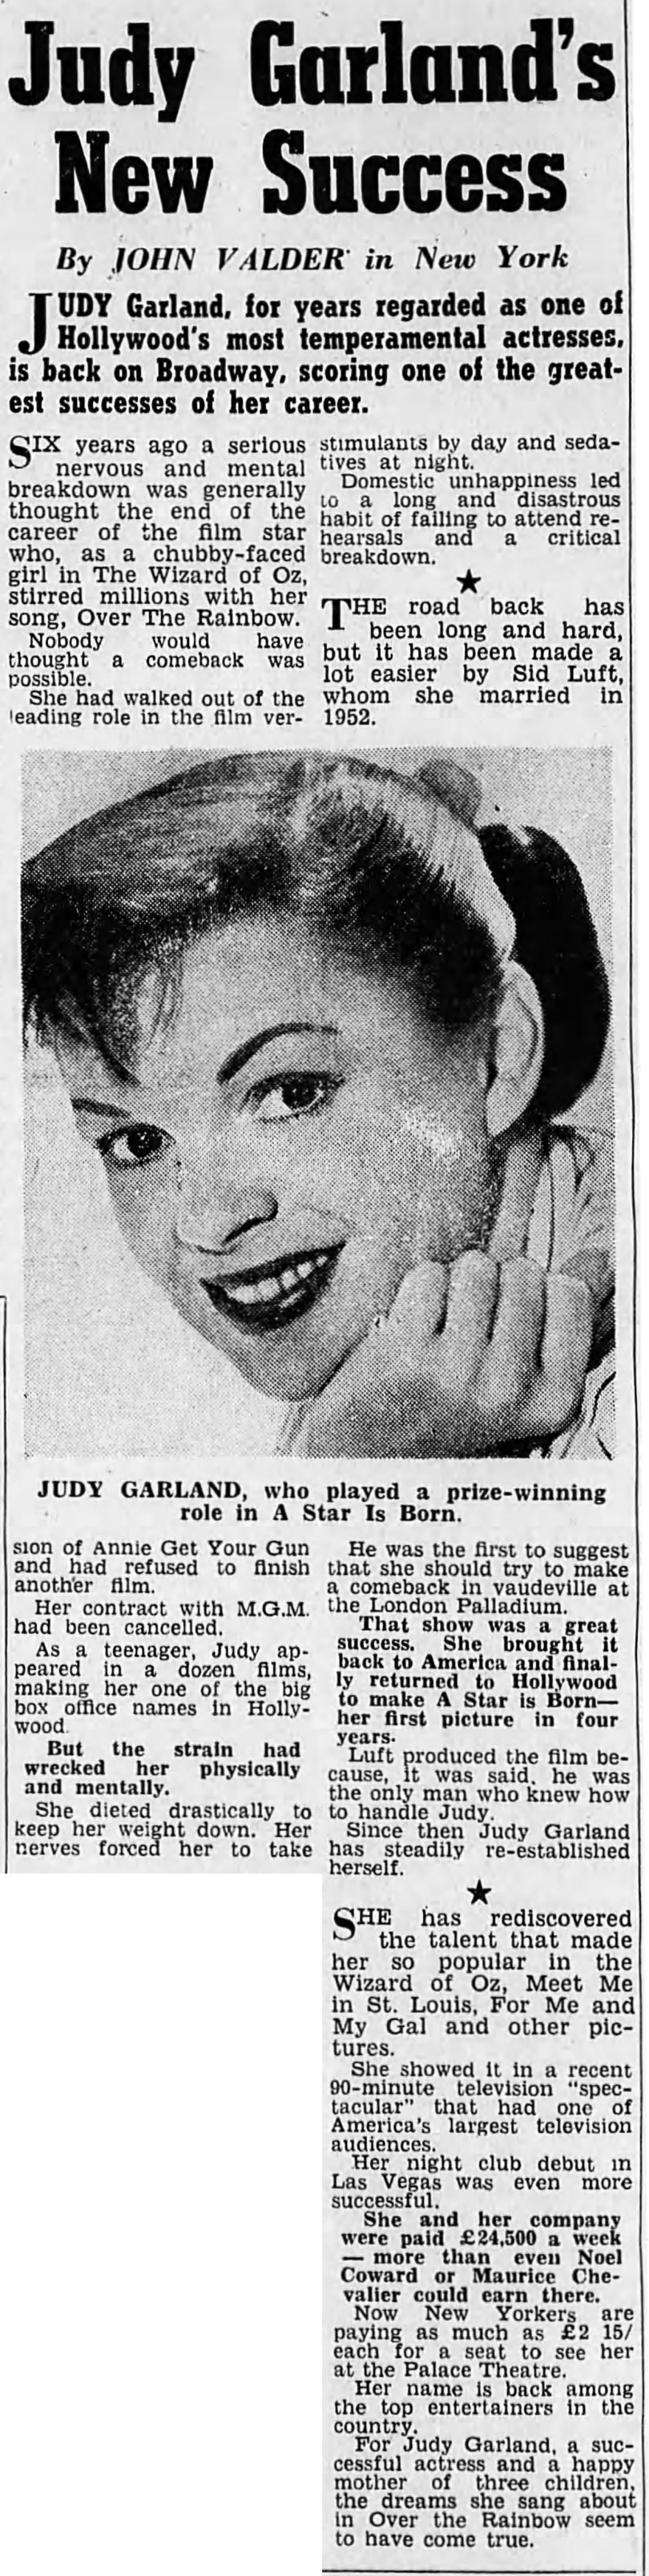 October 30, 1956 PALACE The_Age (Melbourne Australia)